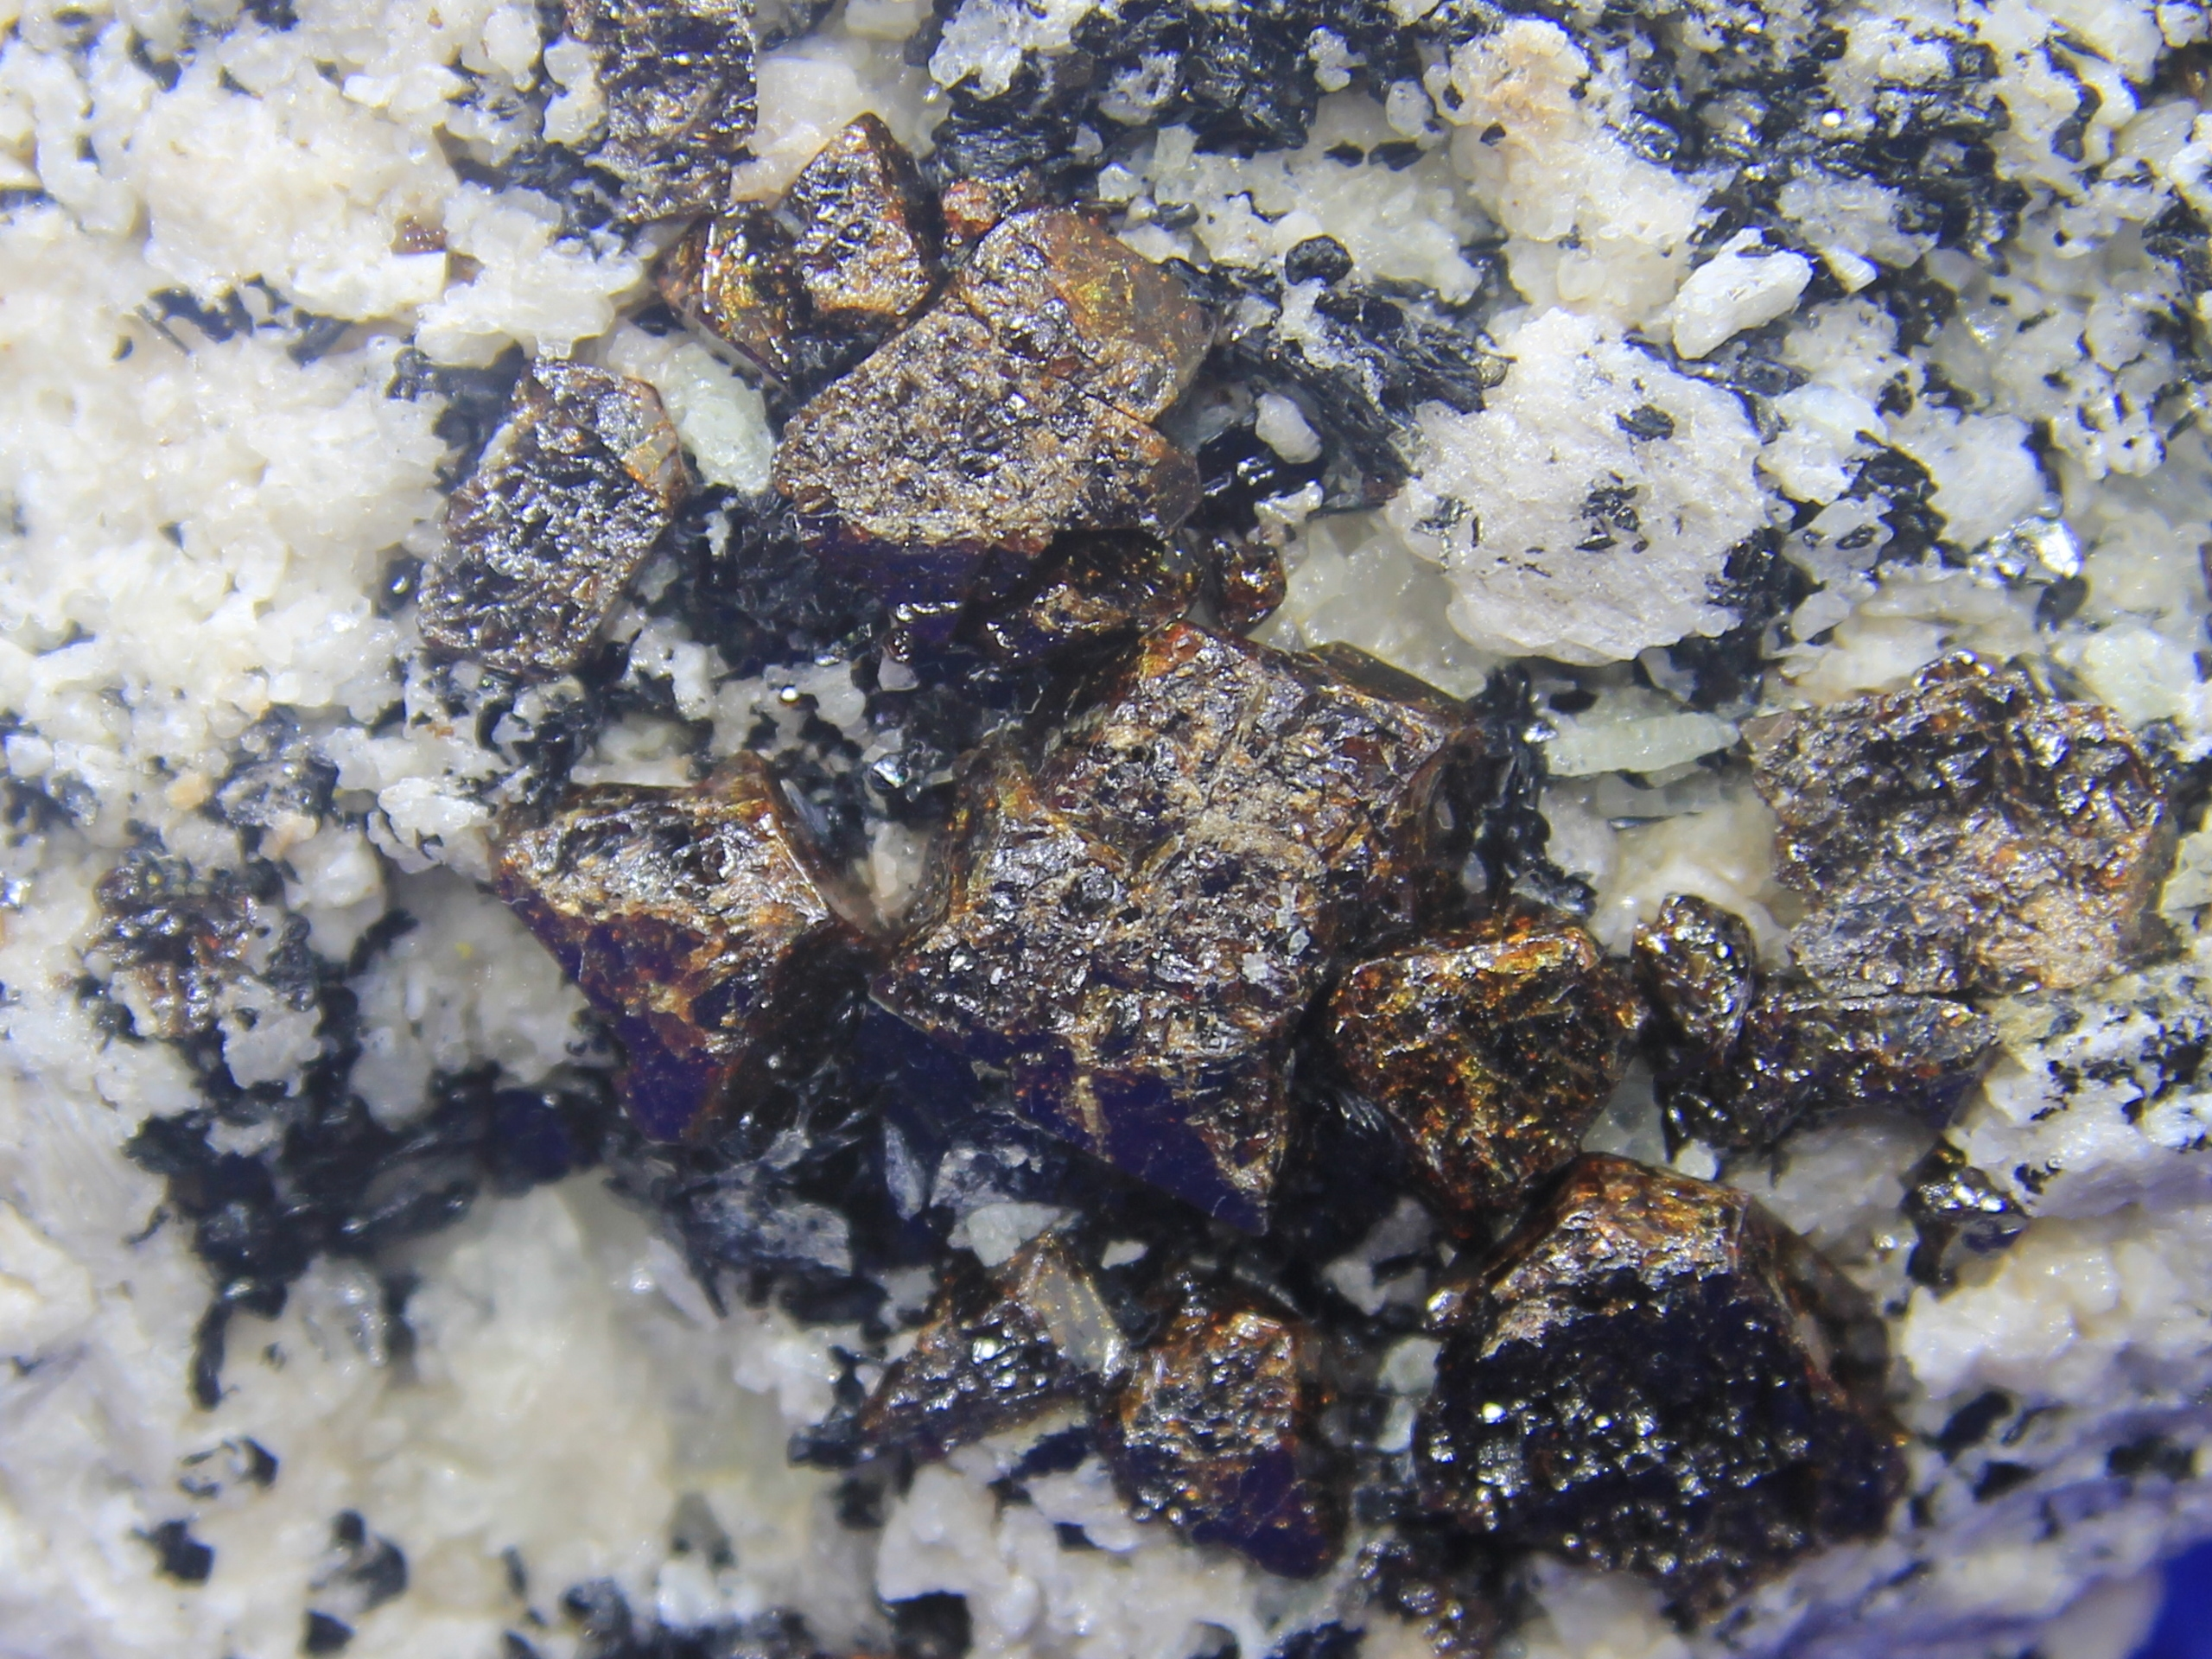 Pyrochlore (fluorcalciopyrochlore) and annite